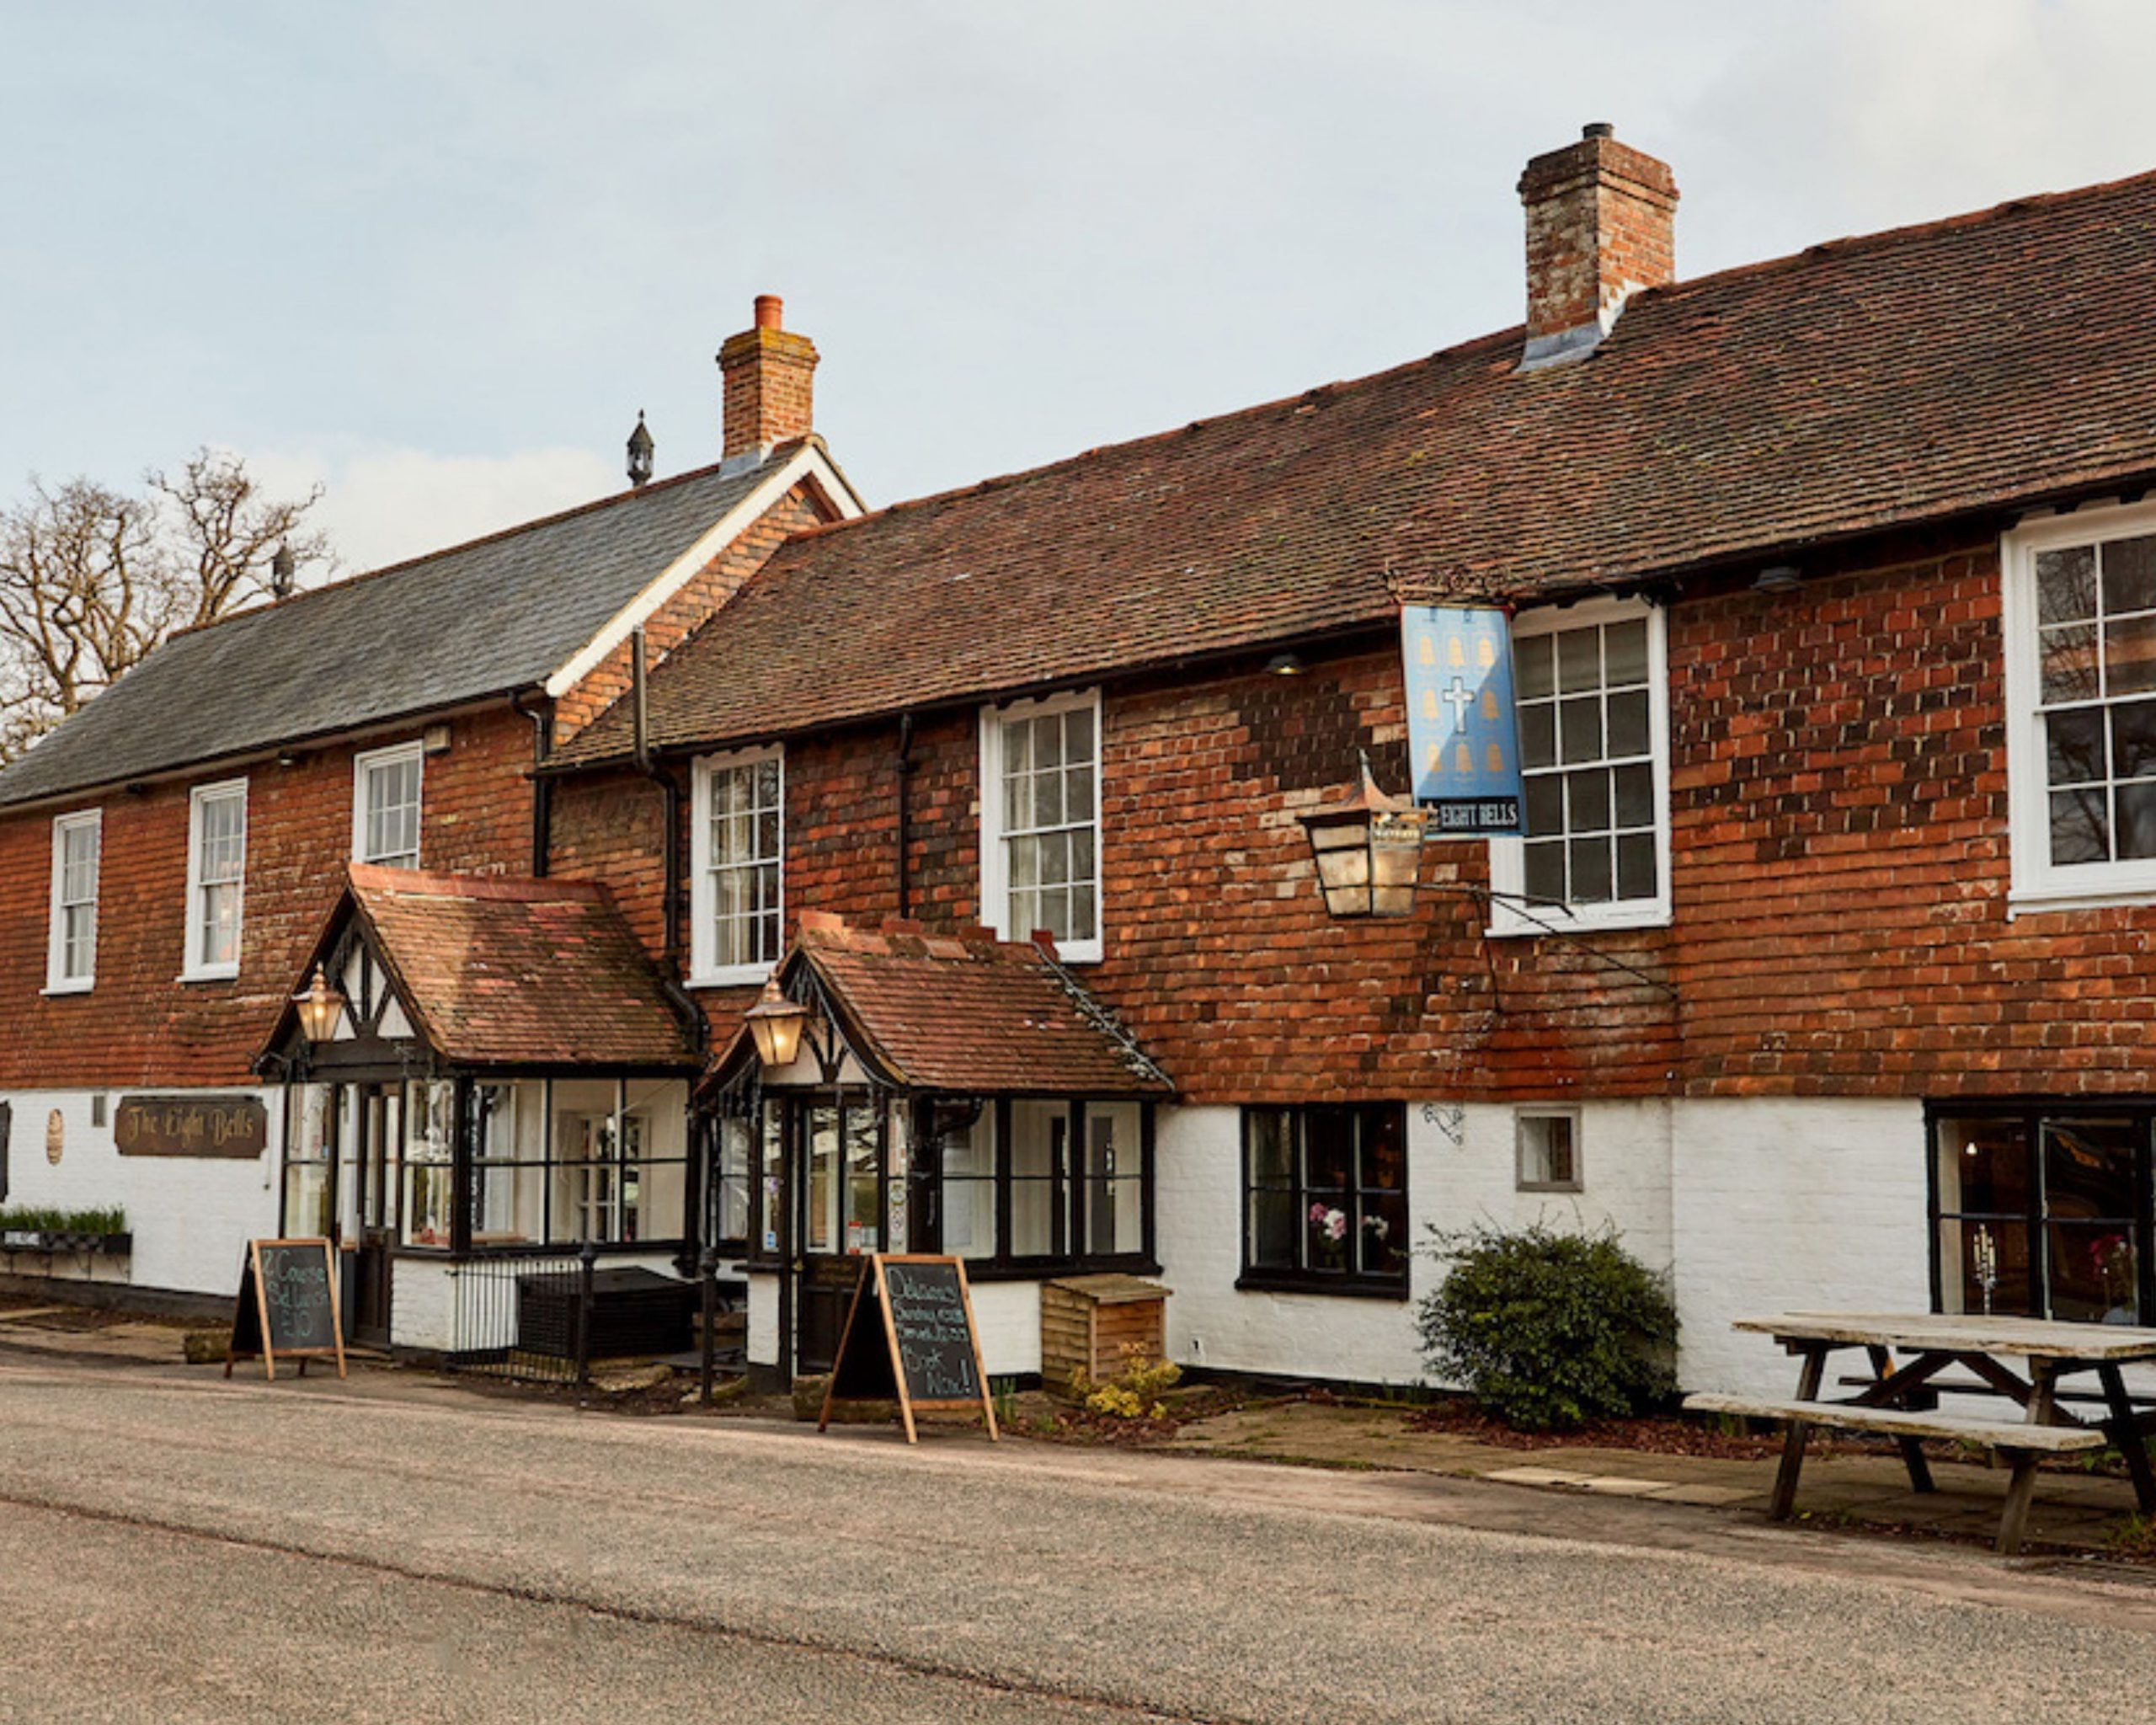 A traditional English pub in Kent